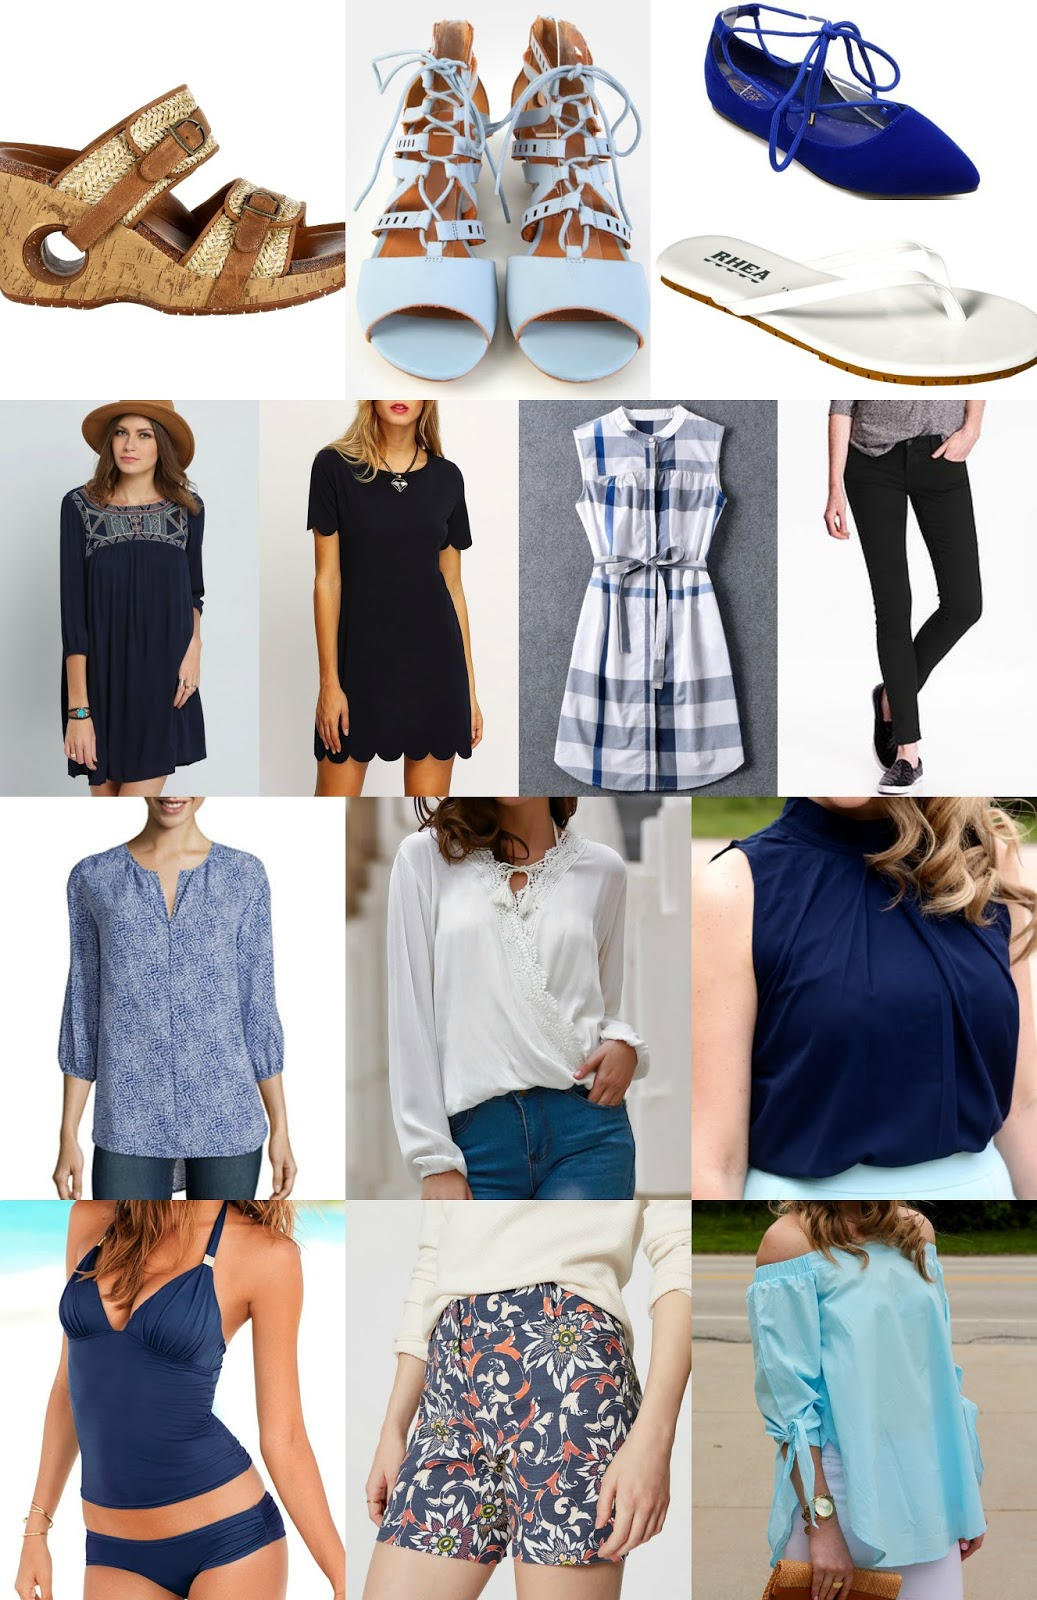 May monthly clothing budget